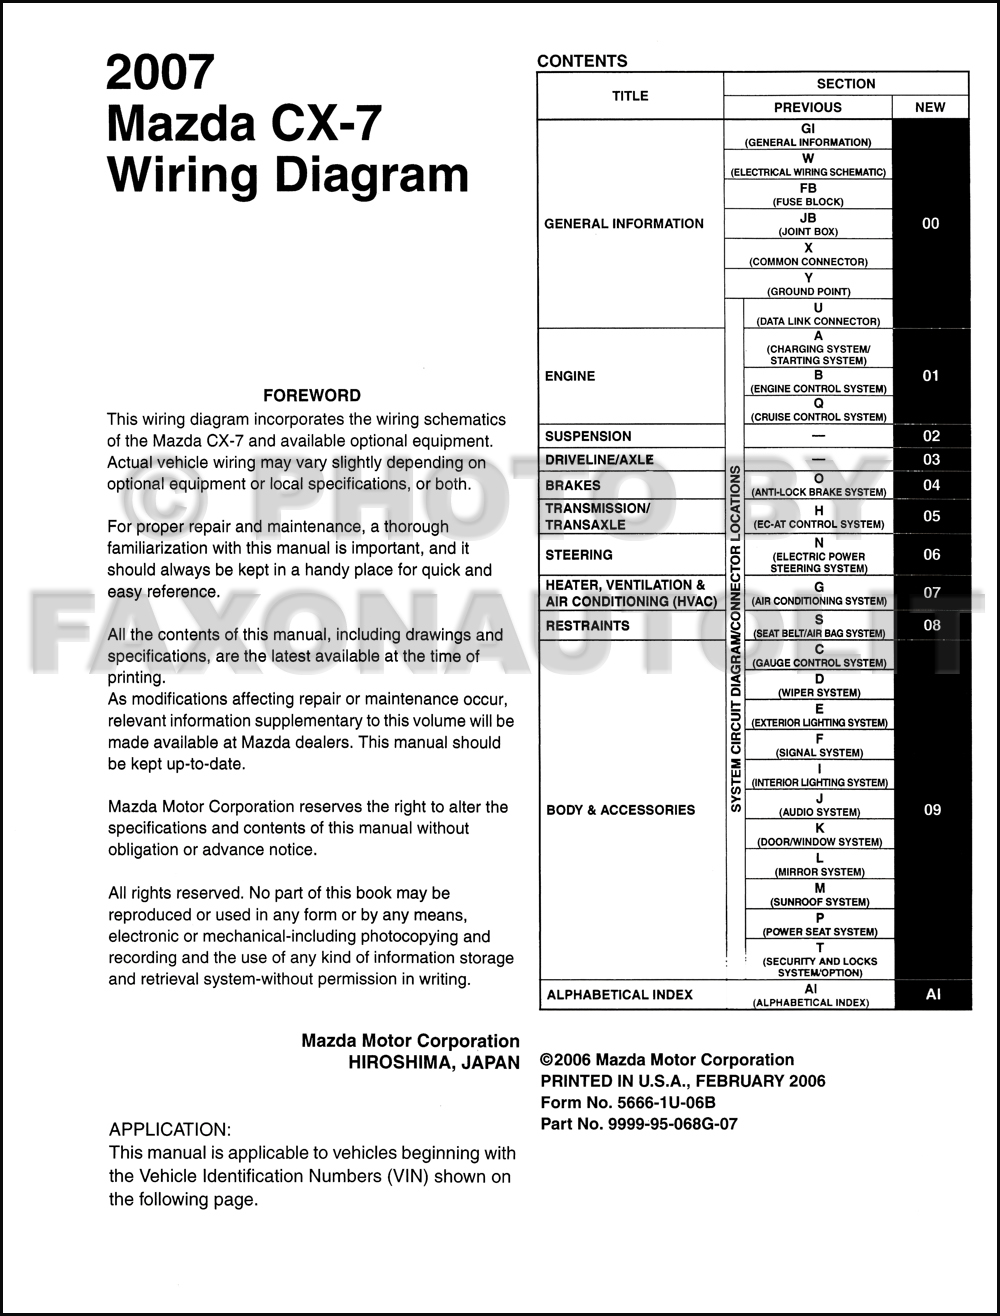 Wiring Diagram Manual Wdm : Mazda cx wiring diagram manual original